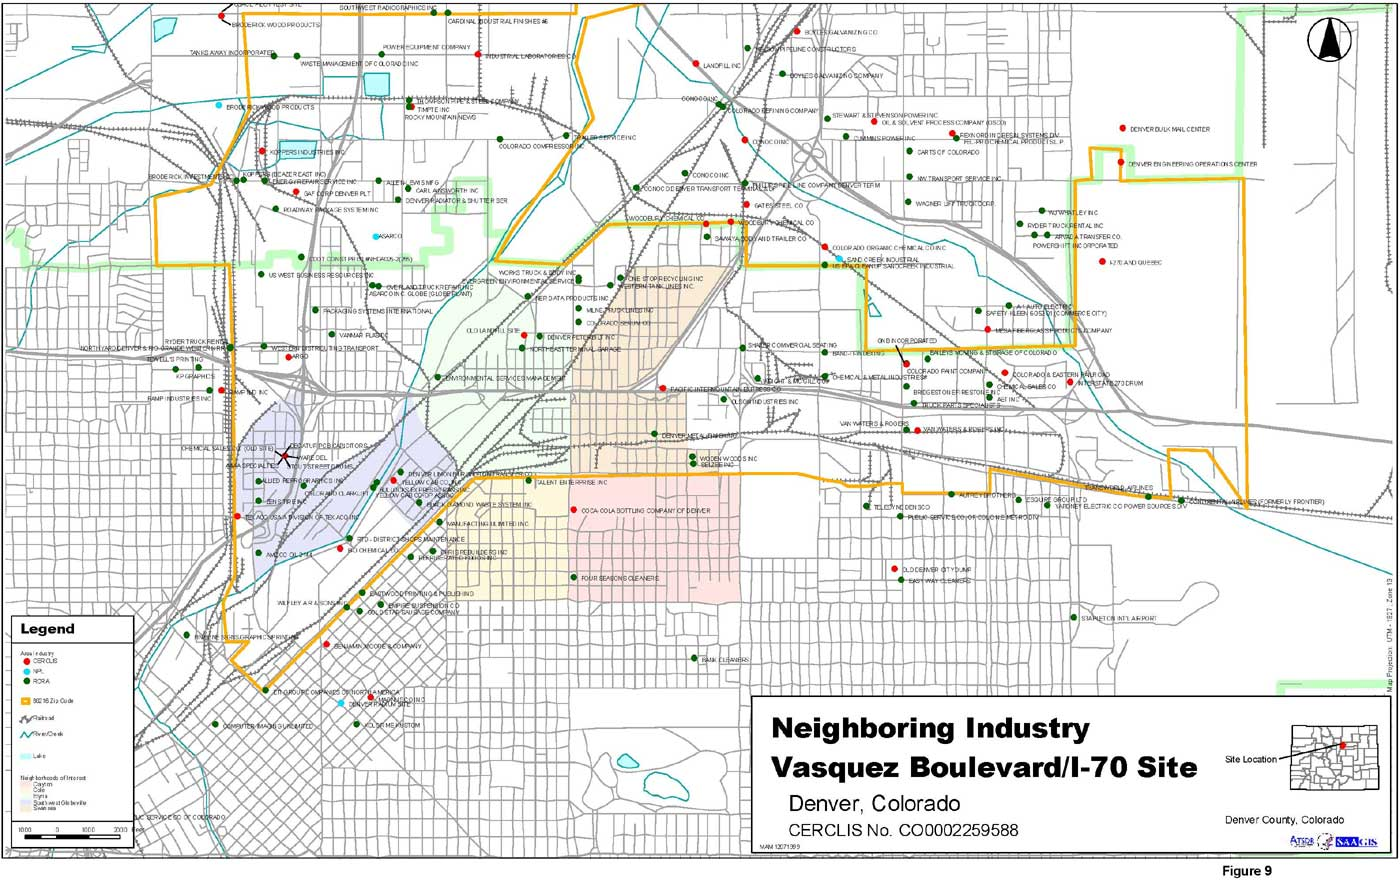 Neighboring Industry Site Location Map